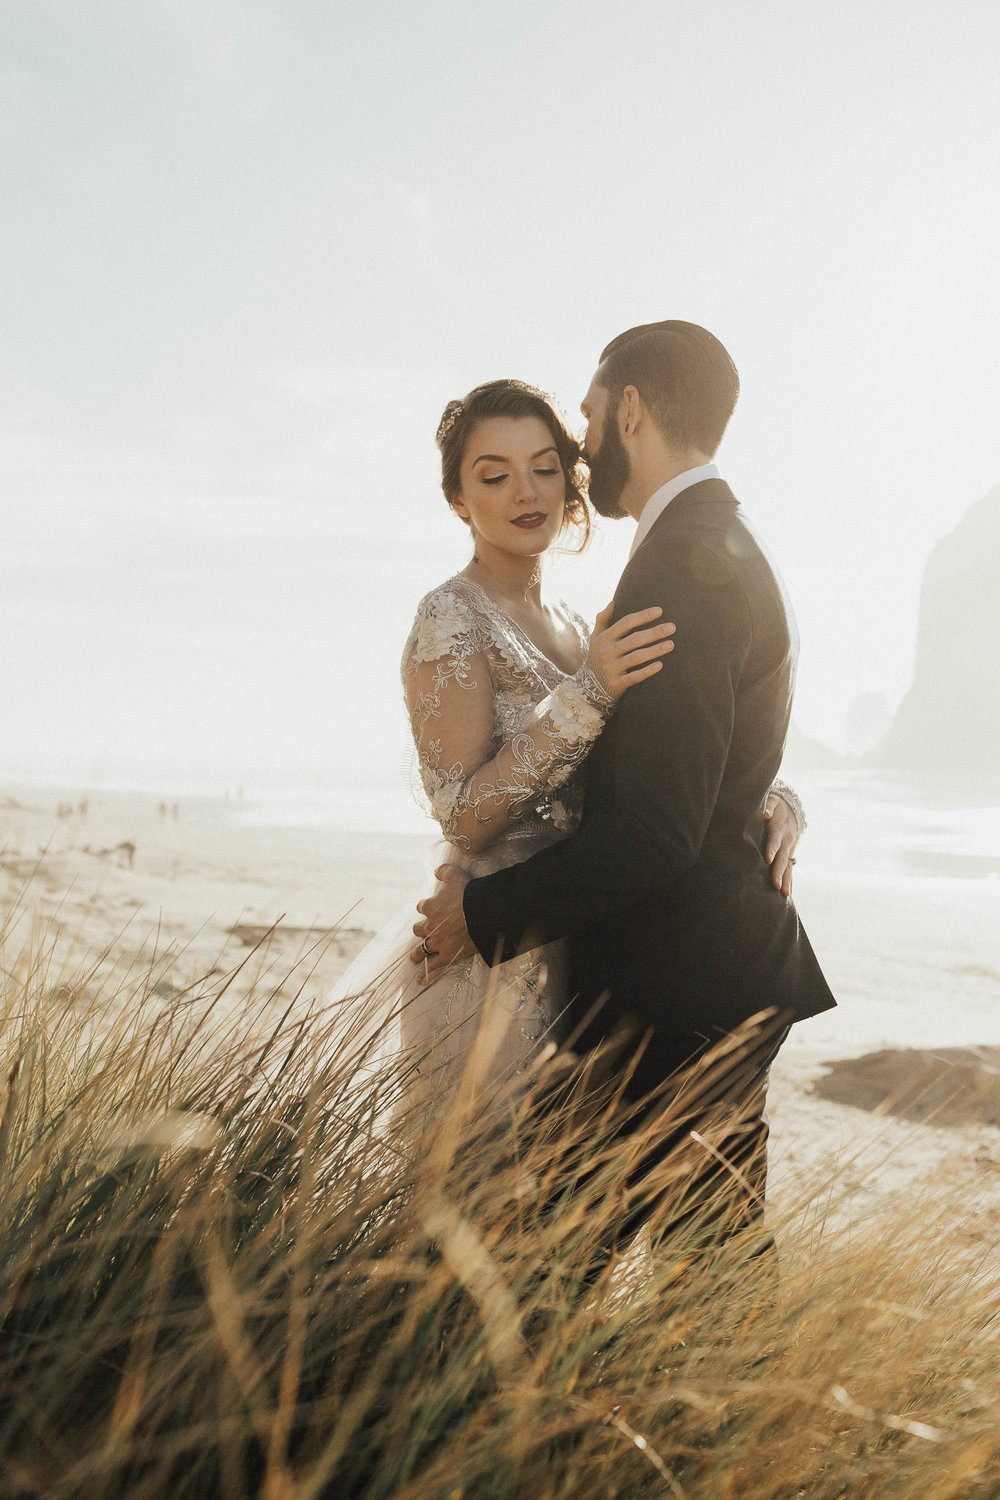 Cannon Beach Elopement - Michelle Larmand Photography - 072